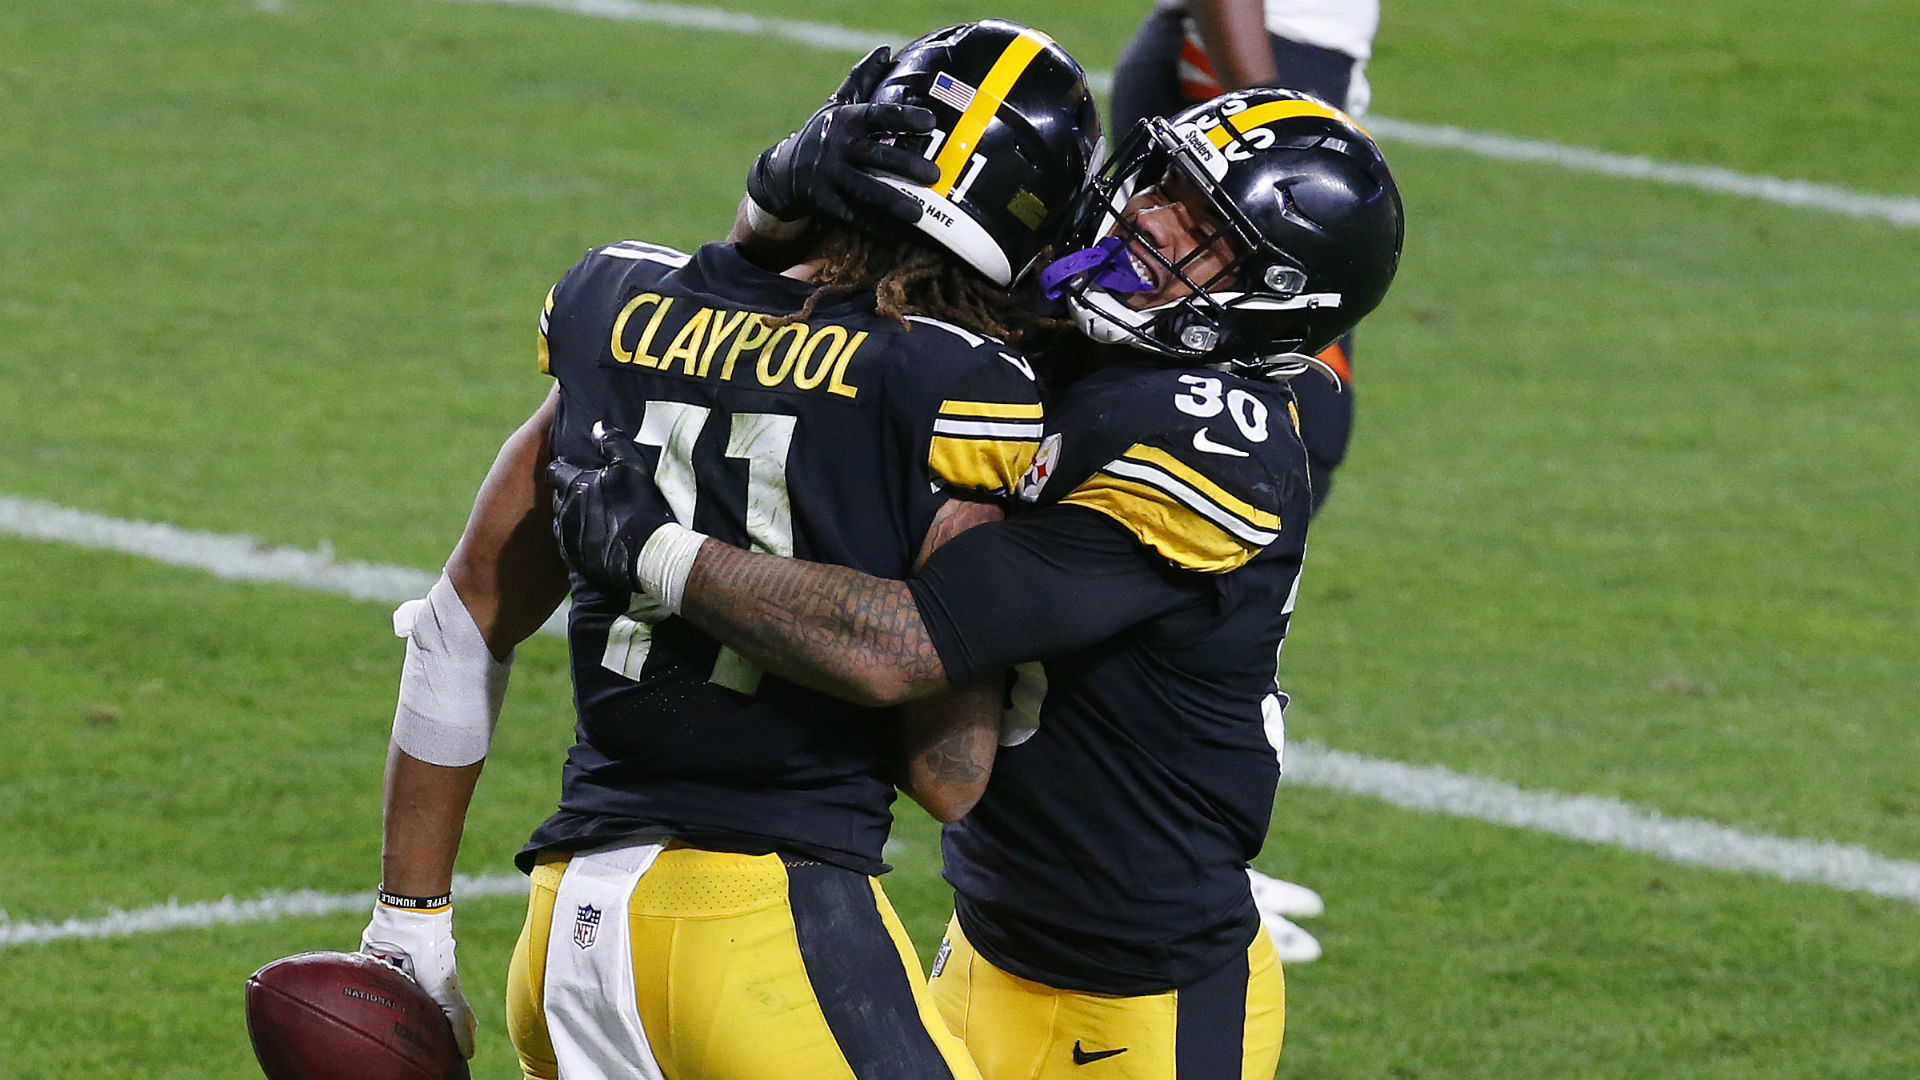 The lone unbeaten team left in the NFL, can the Pittsburgh Steelers go the entire season without losing a game?